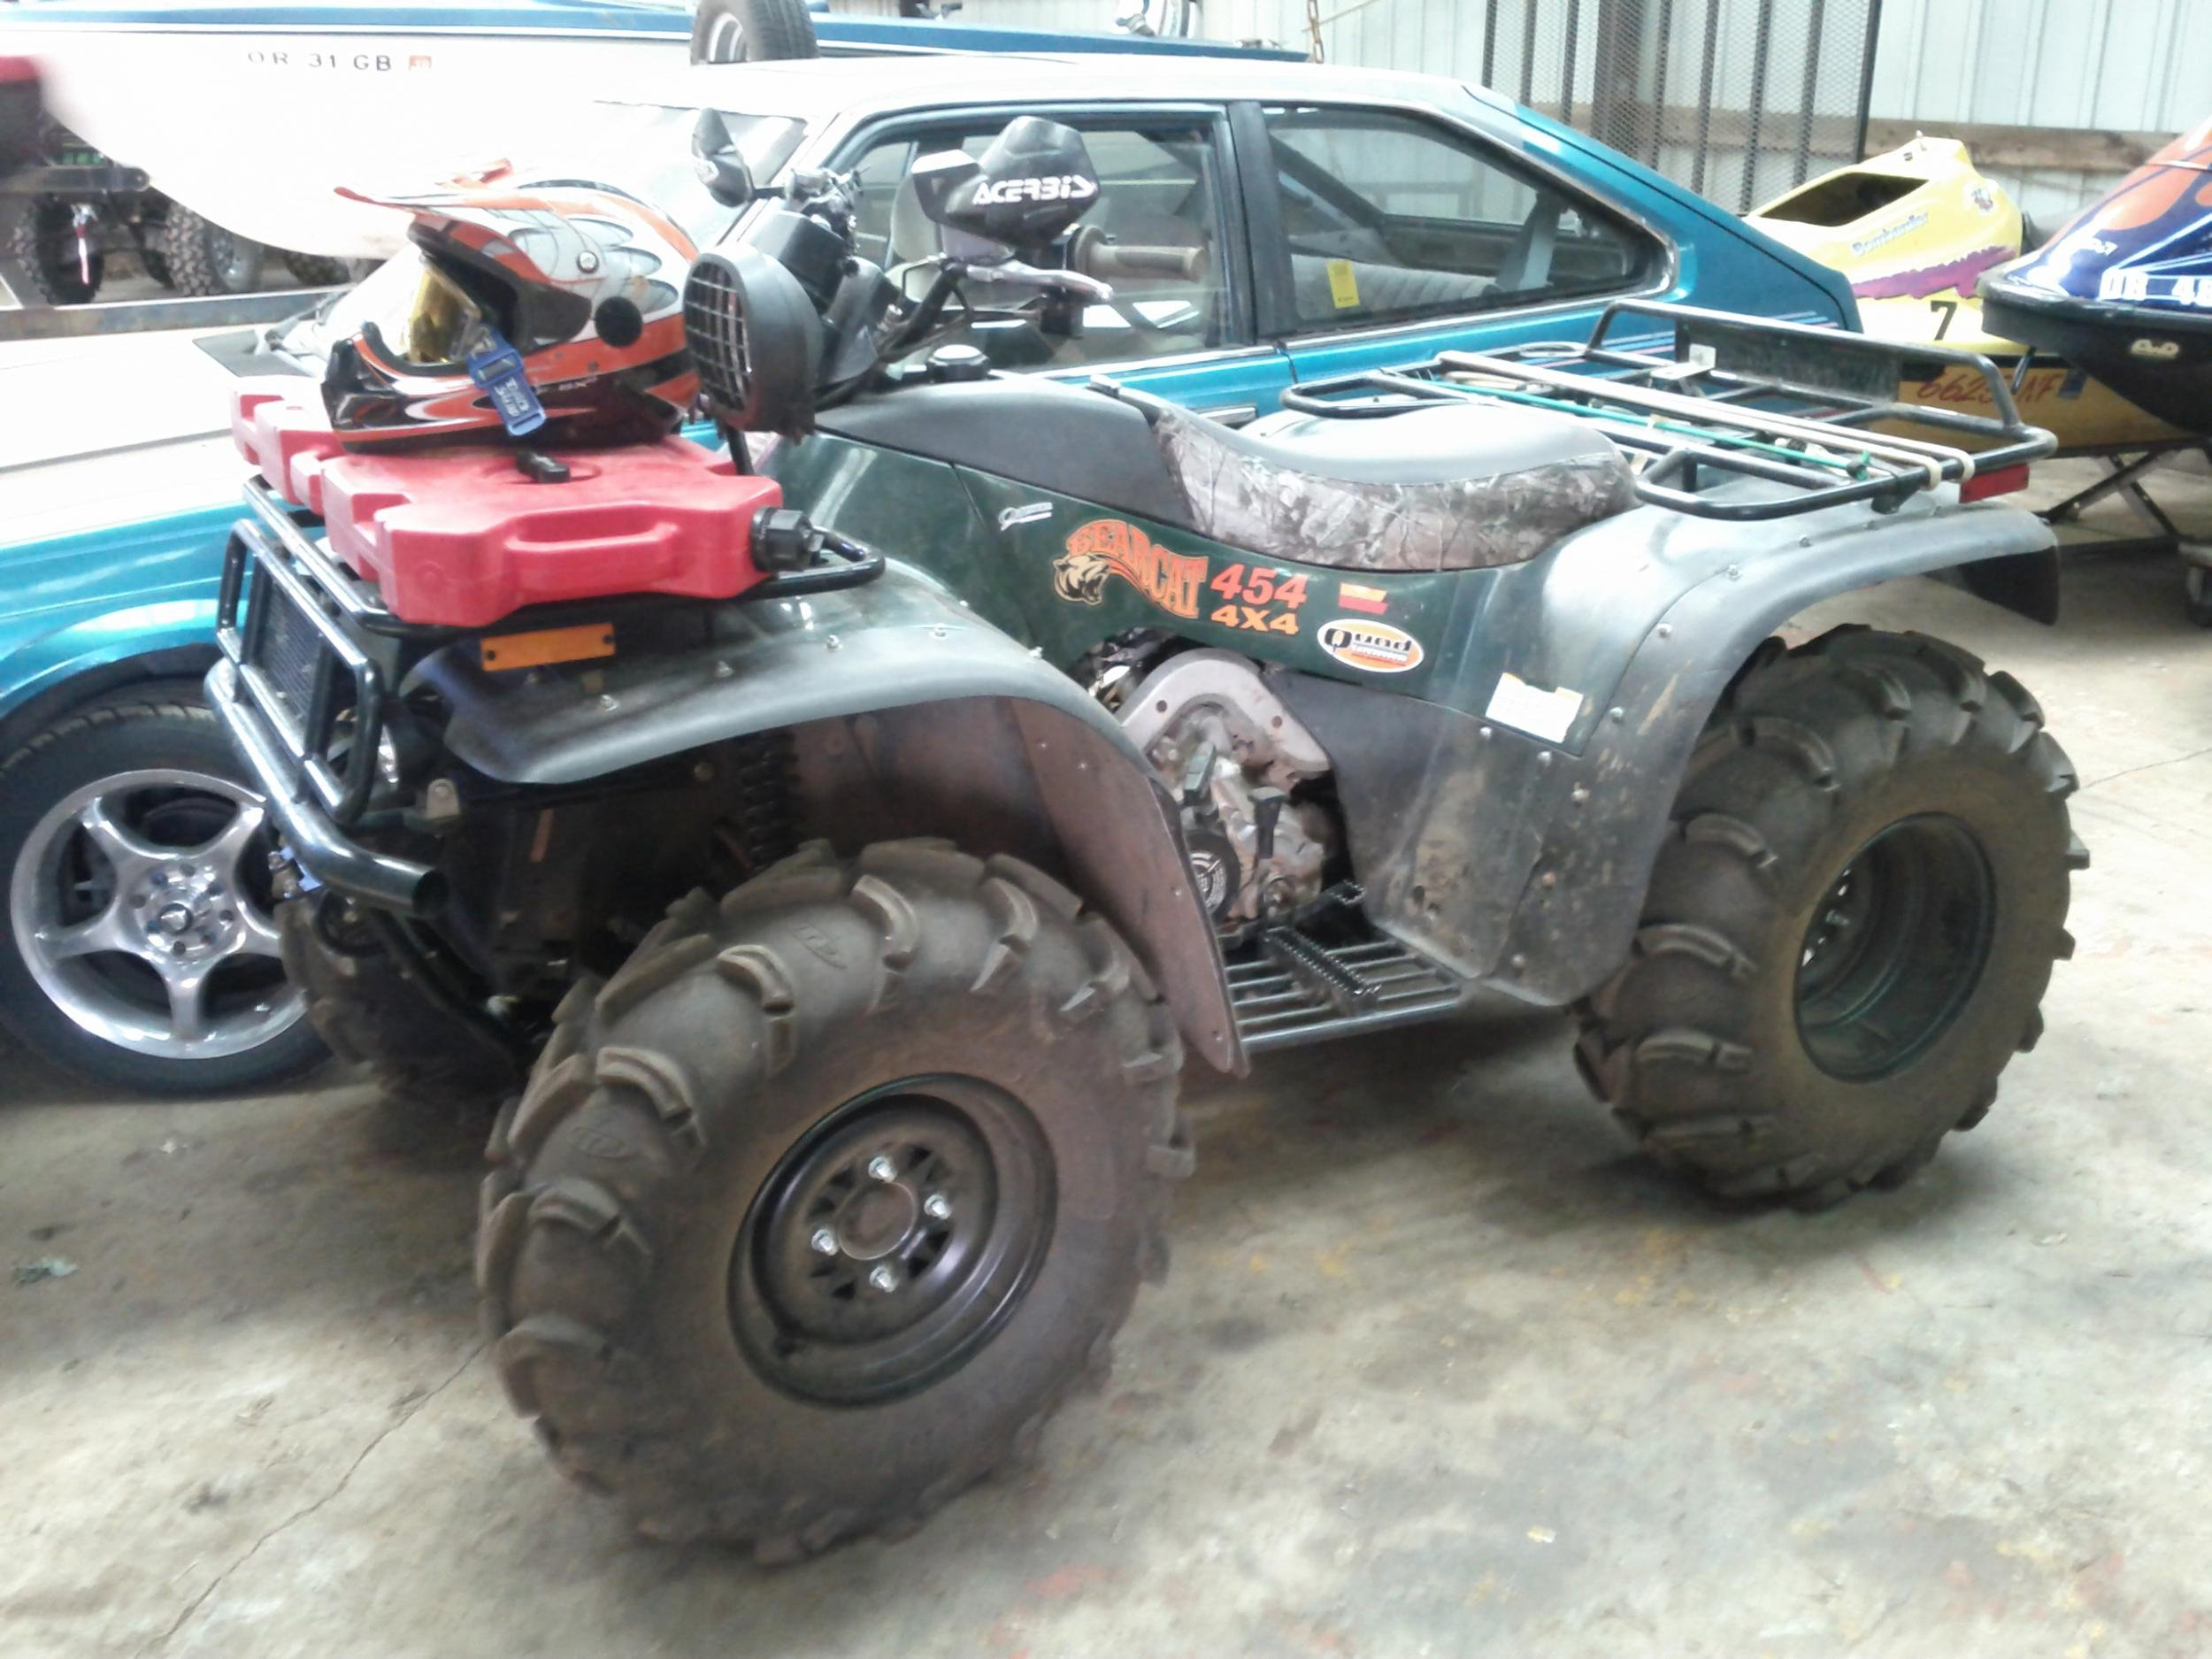 1997 Bearcat 454 - upgrades-img_20120826_144611.jpg